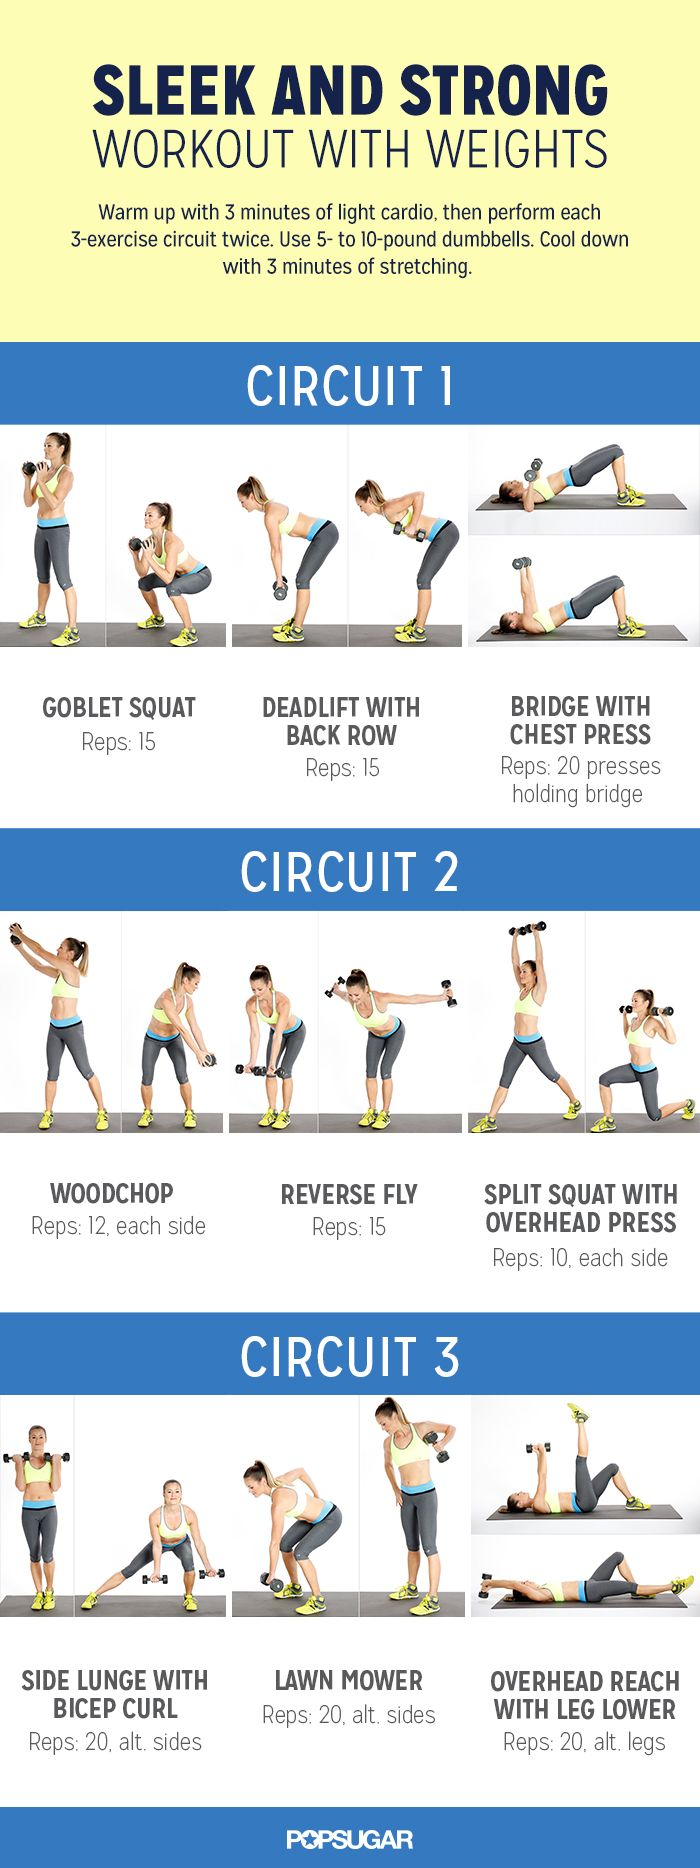 Here's the weighted circuit workout plan you need to get strong, sleek, and toned — fast!